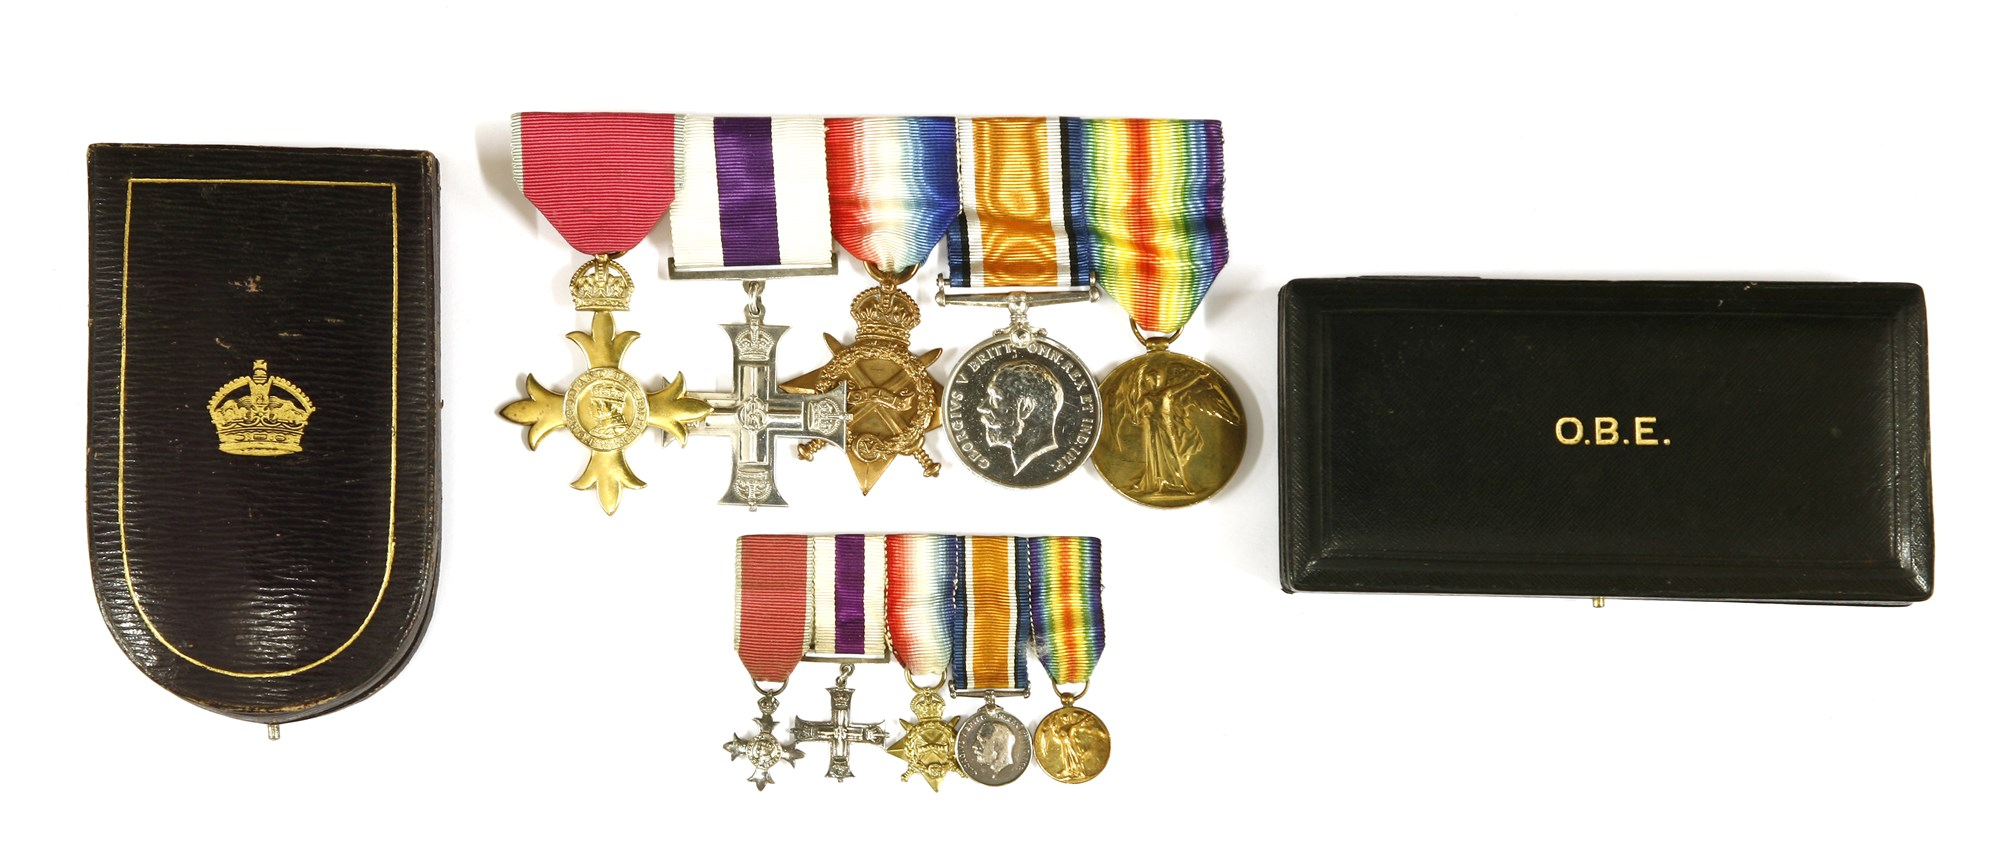 Medals awarded to Captain Thomas Ralph Sneyd-Kynnersley